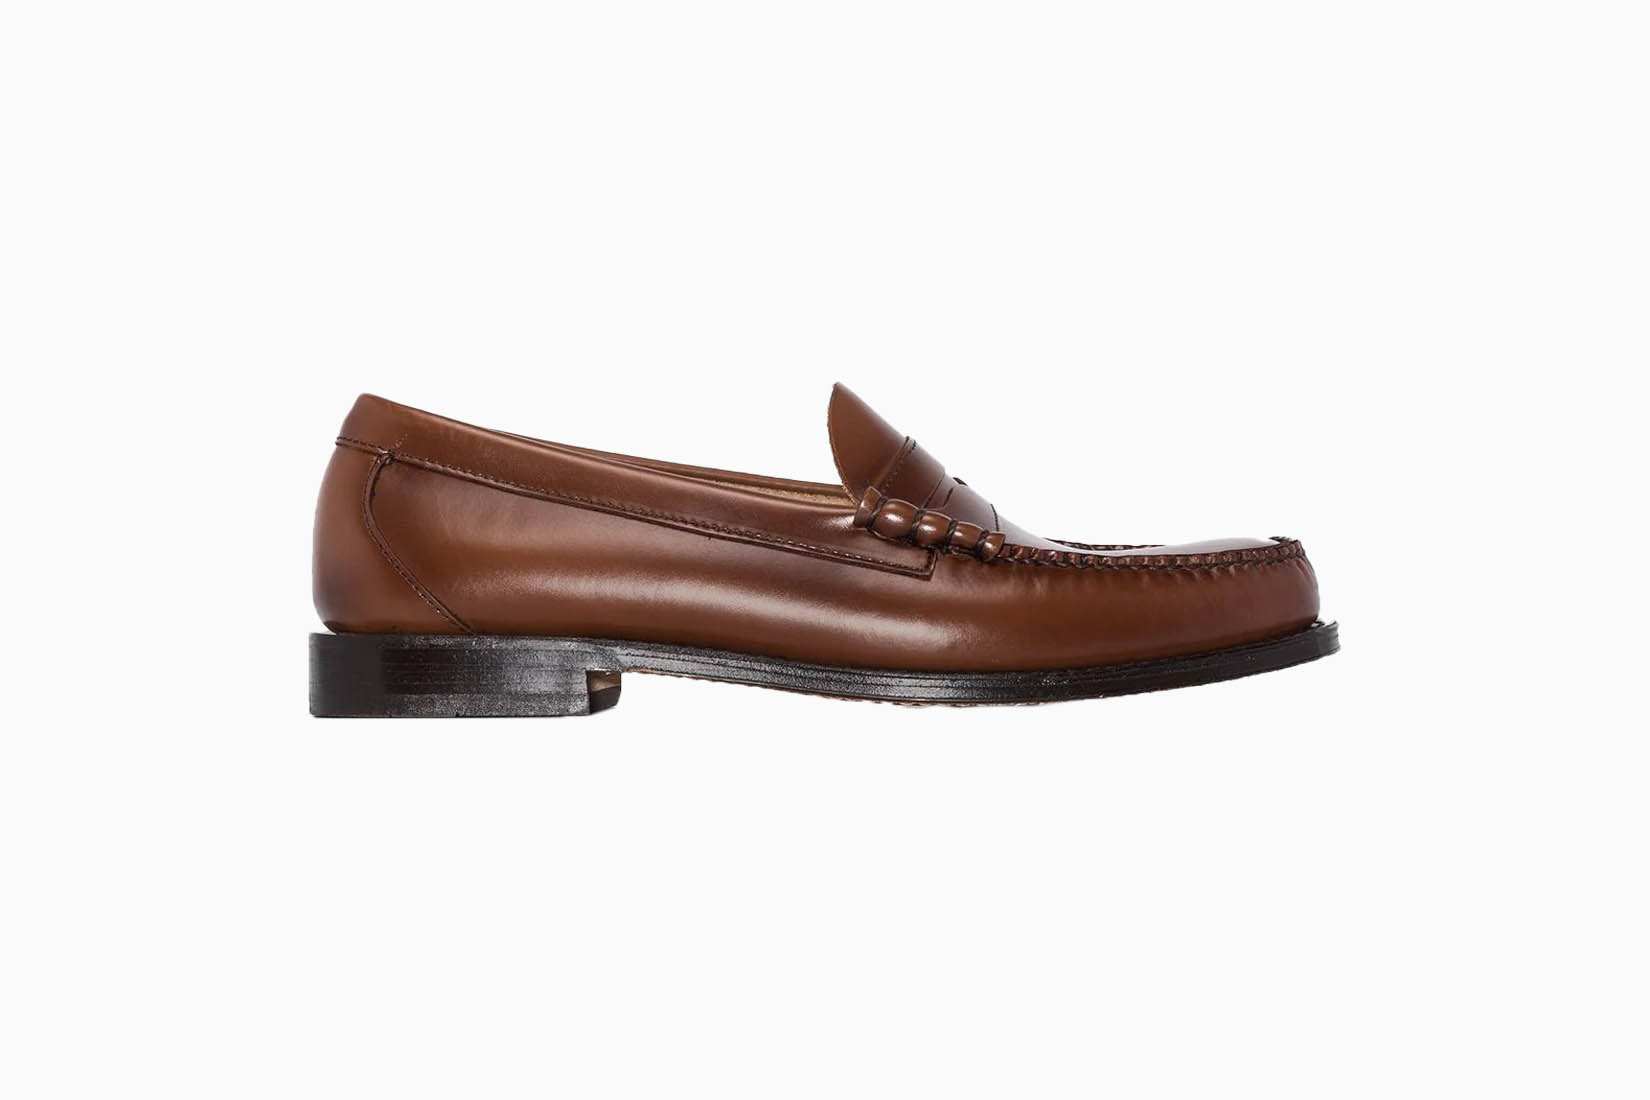 best casual shoes men gh bass and co weejuns larson penny loafers review Luxe Digital